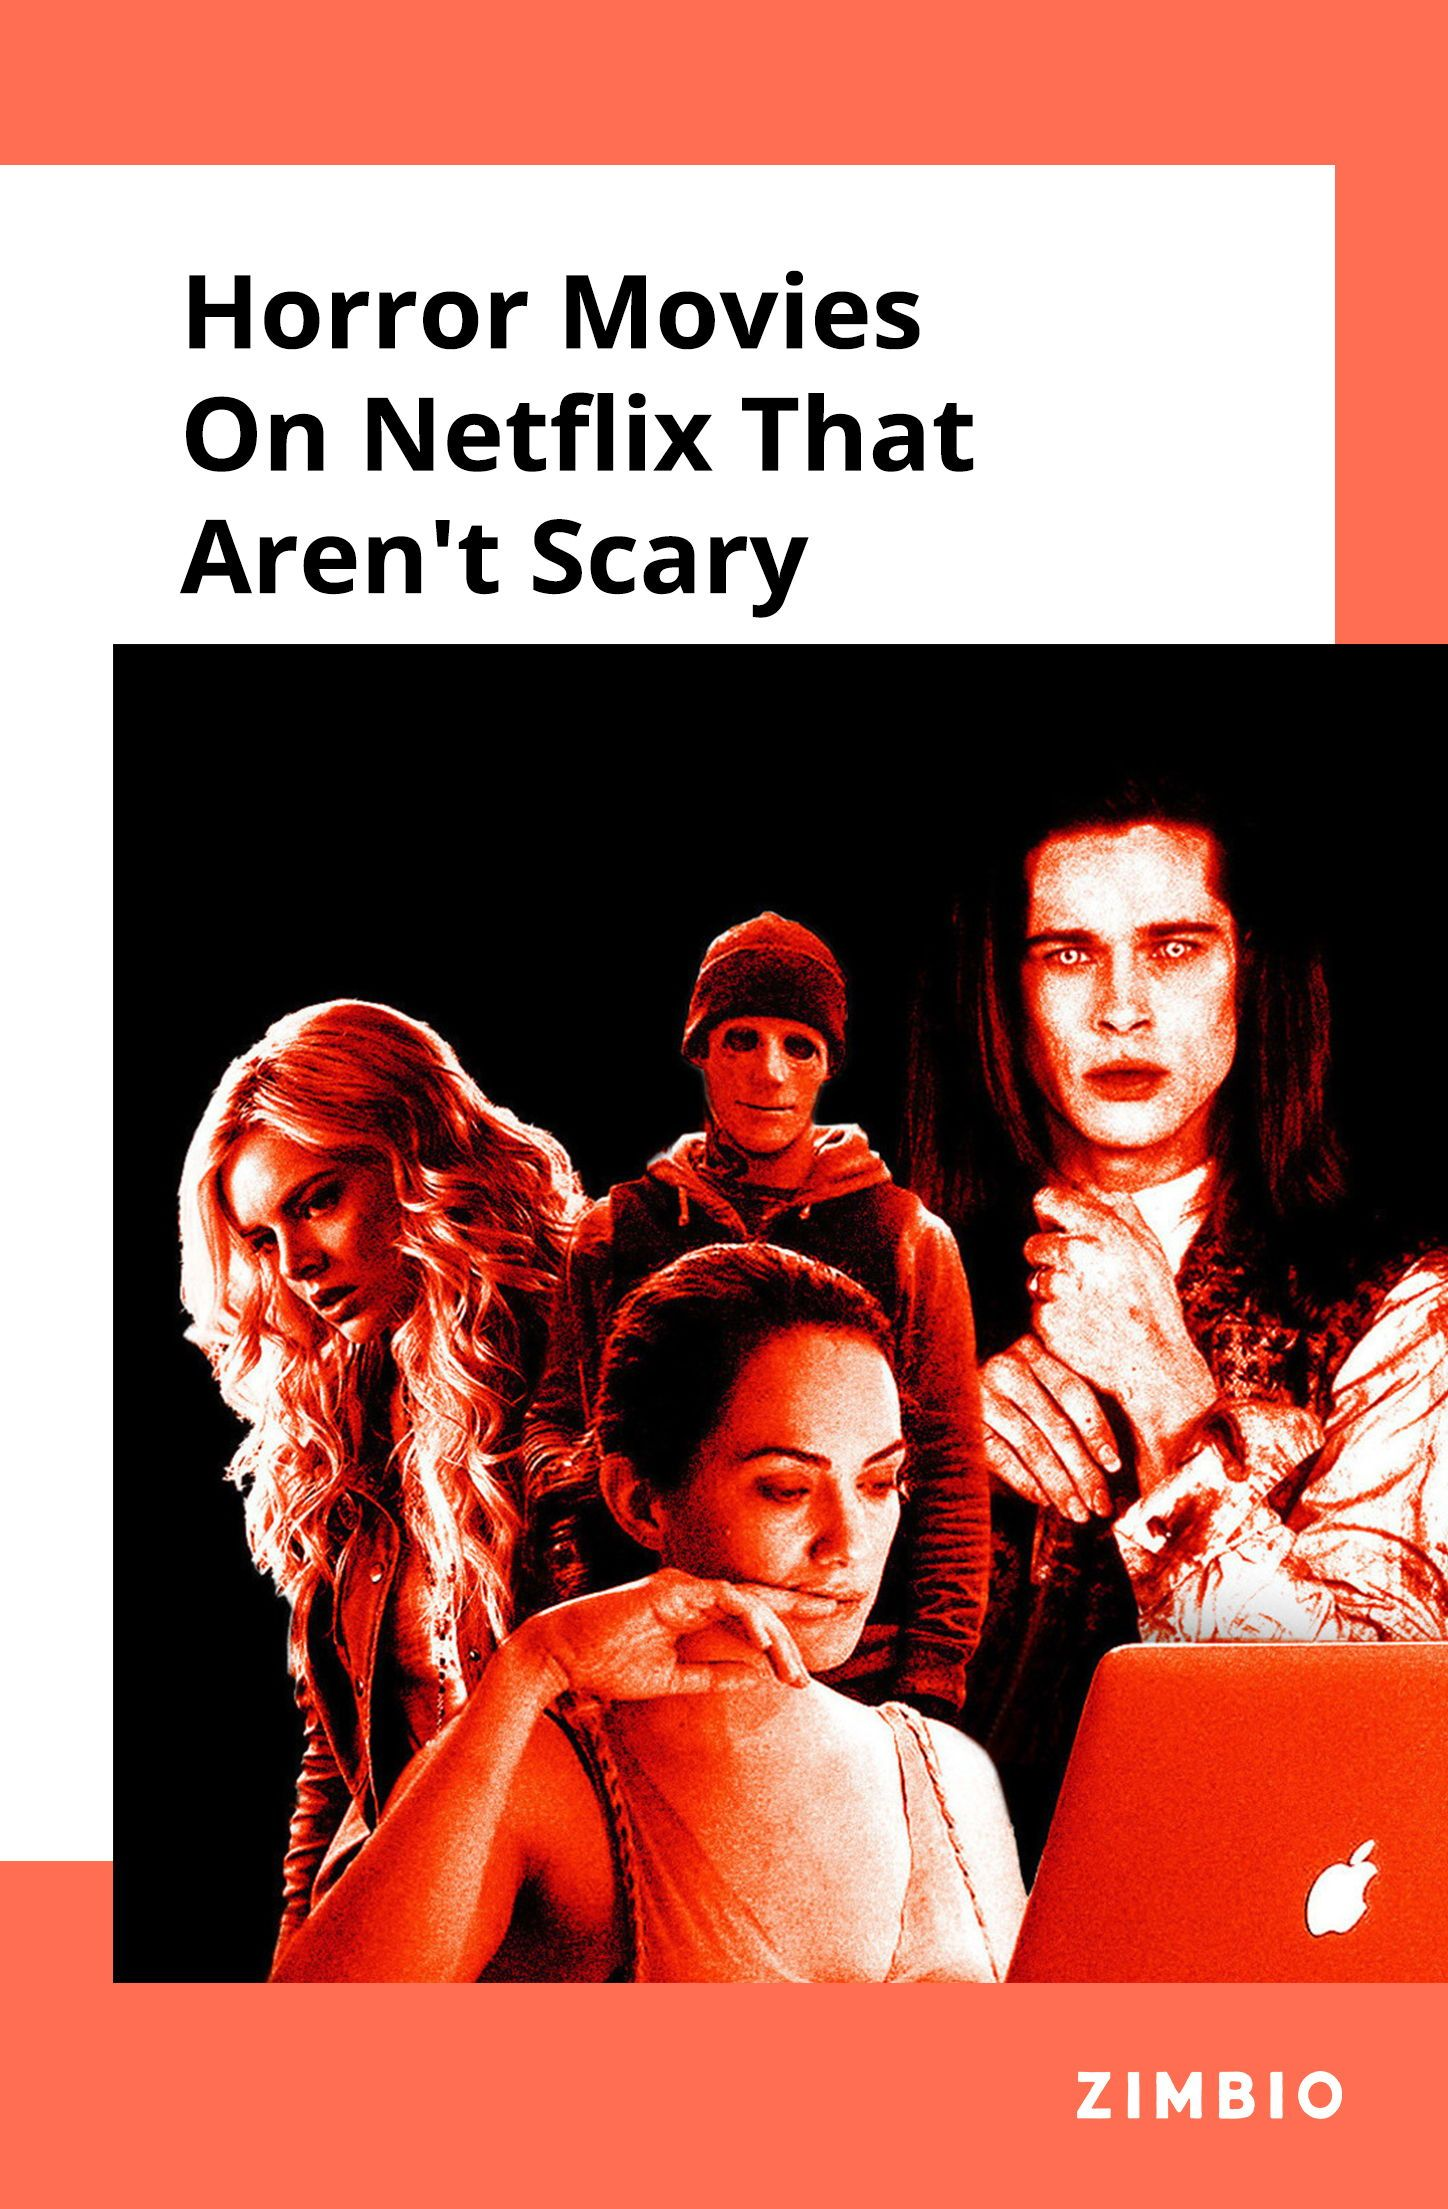 Horror Movies On Netflix That Aren't Scary (With images